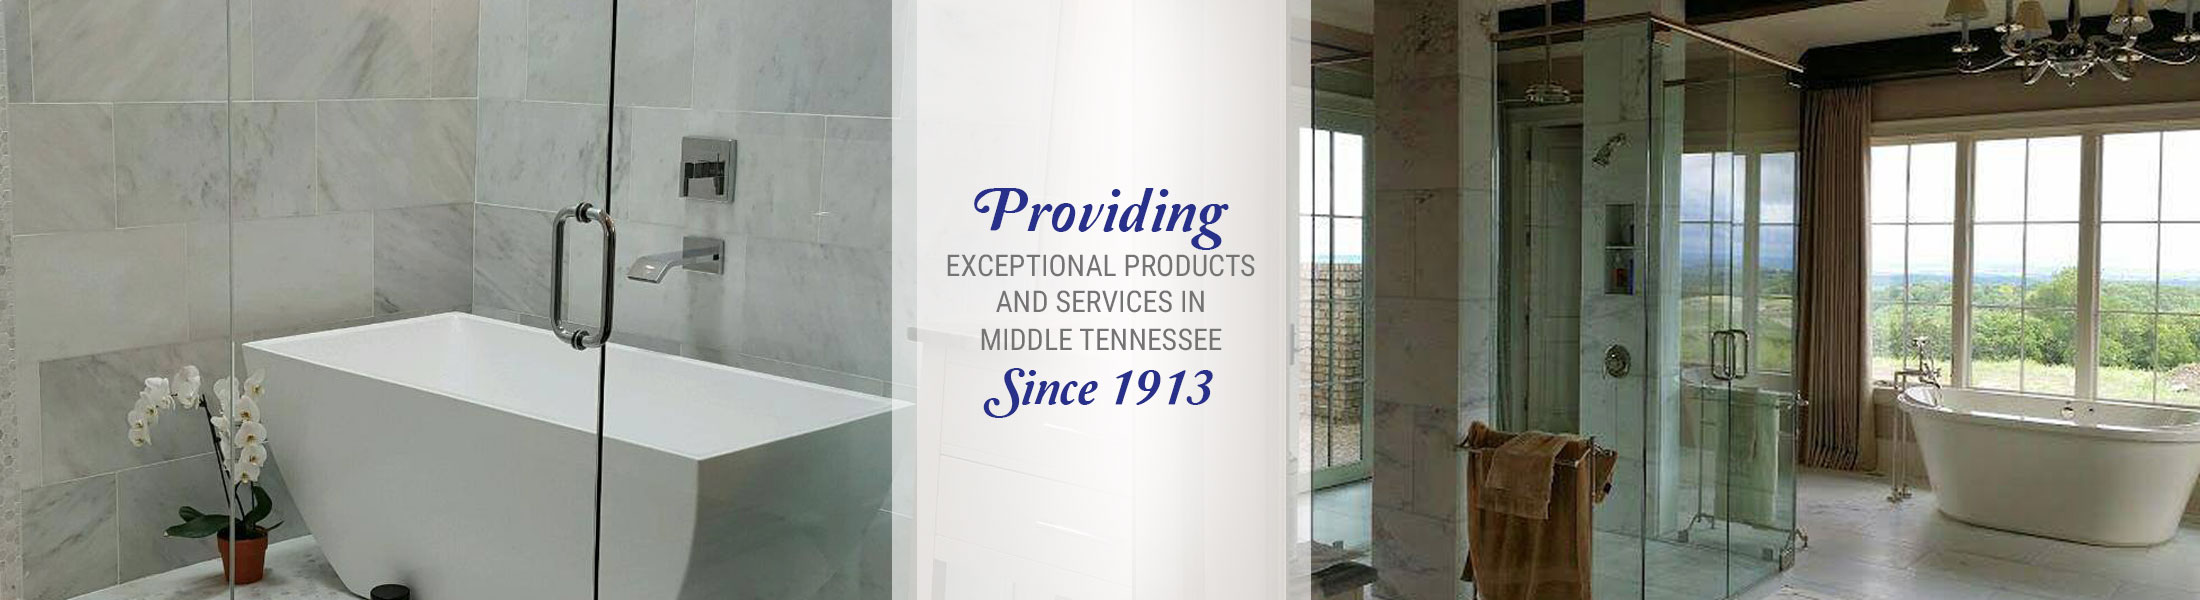 Providing exceptional products and services in Middle Tennessee sing 1913.